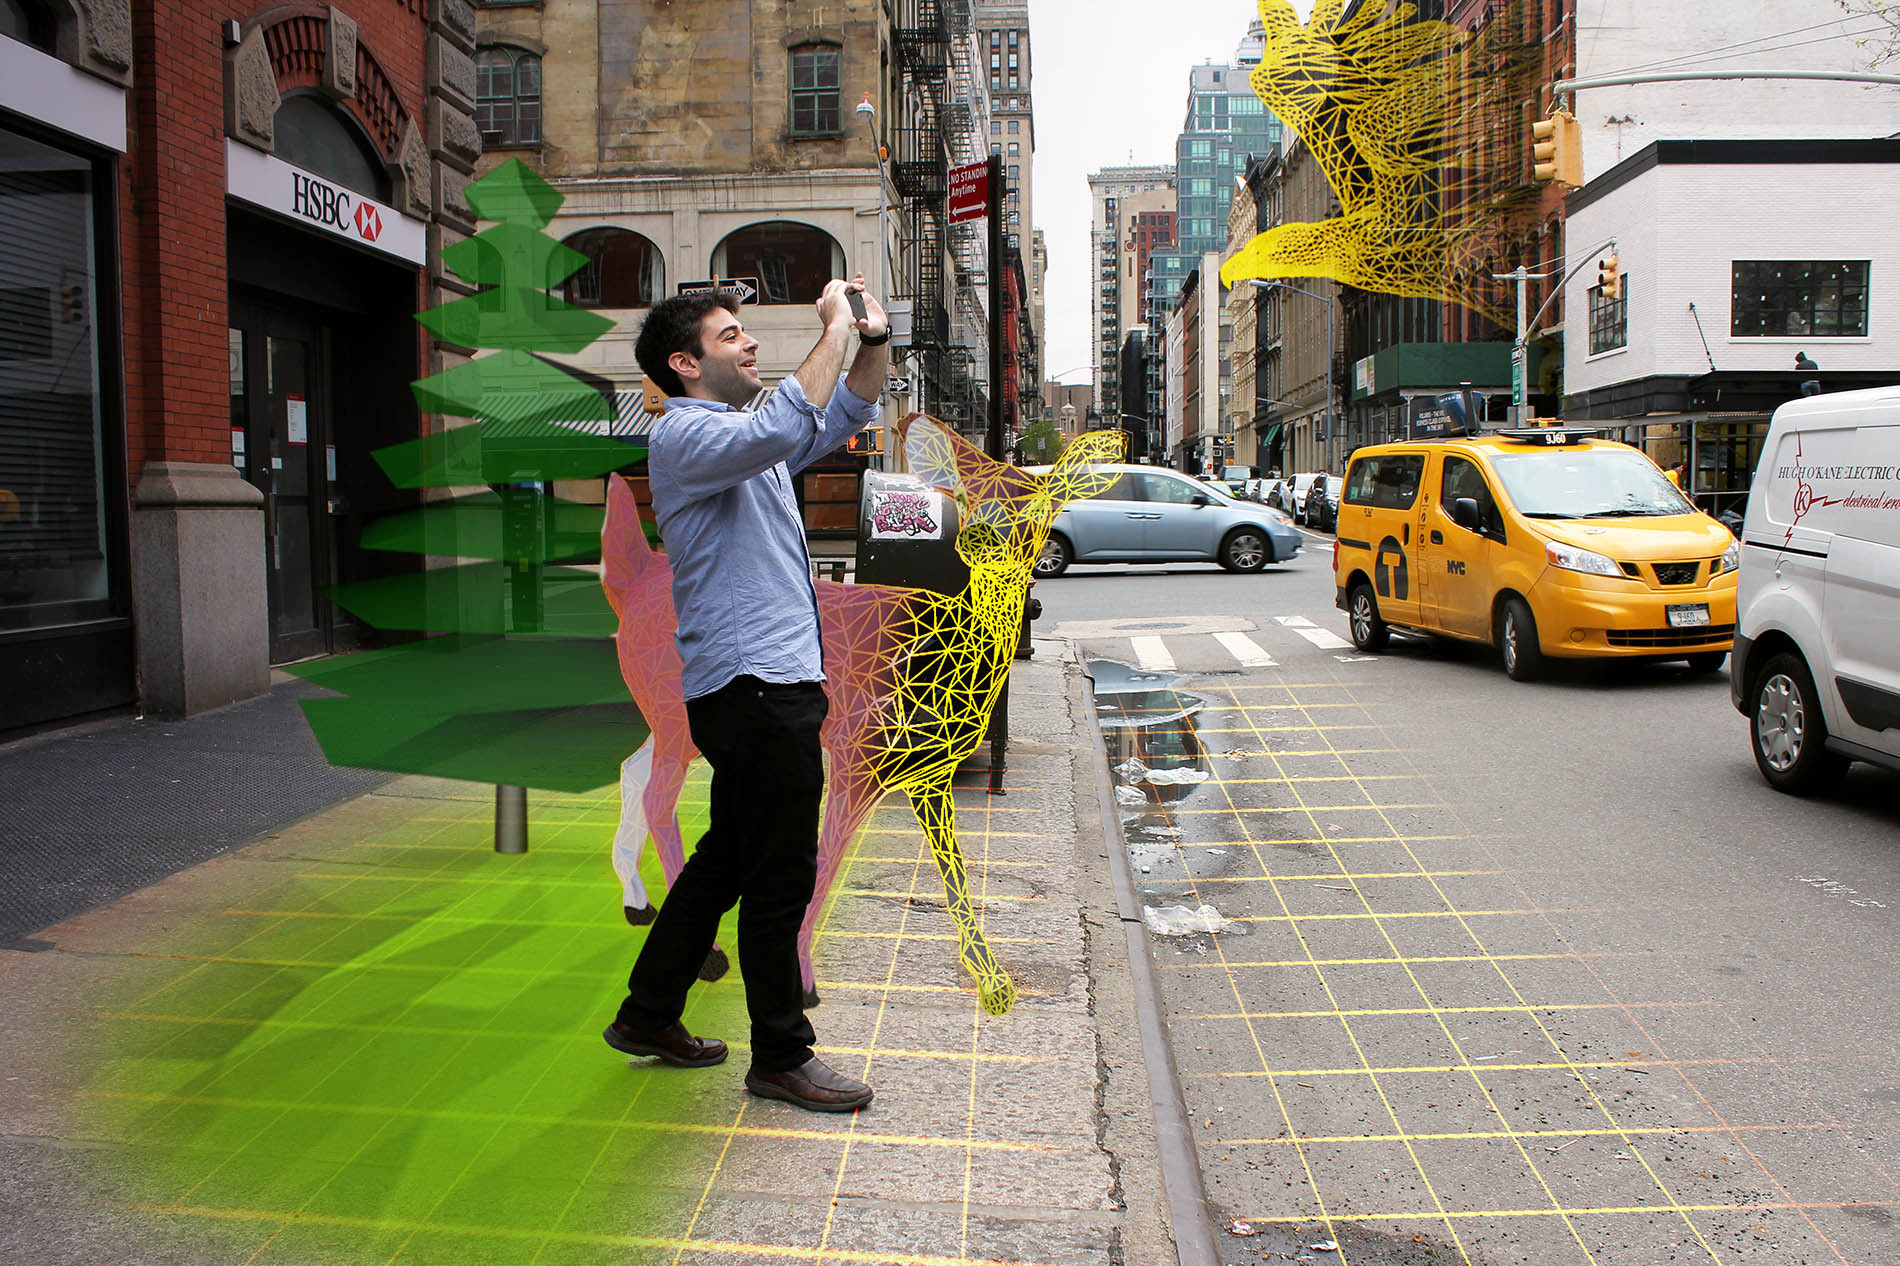 StreetSmart.AR A safer, more social augmented reality for public space